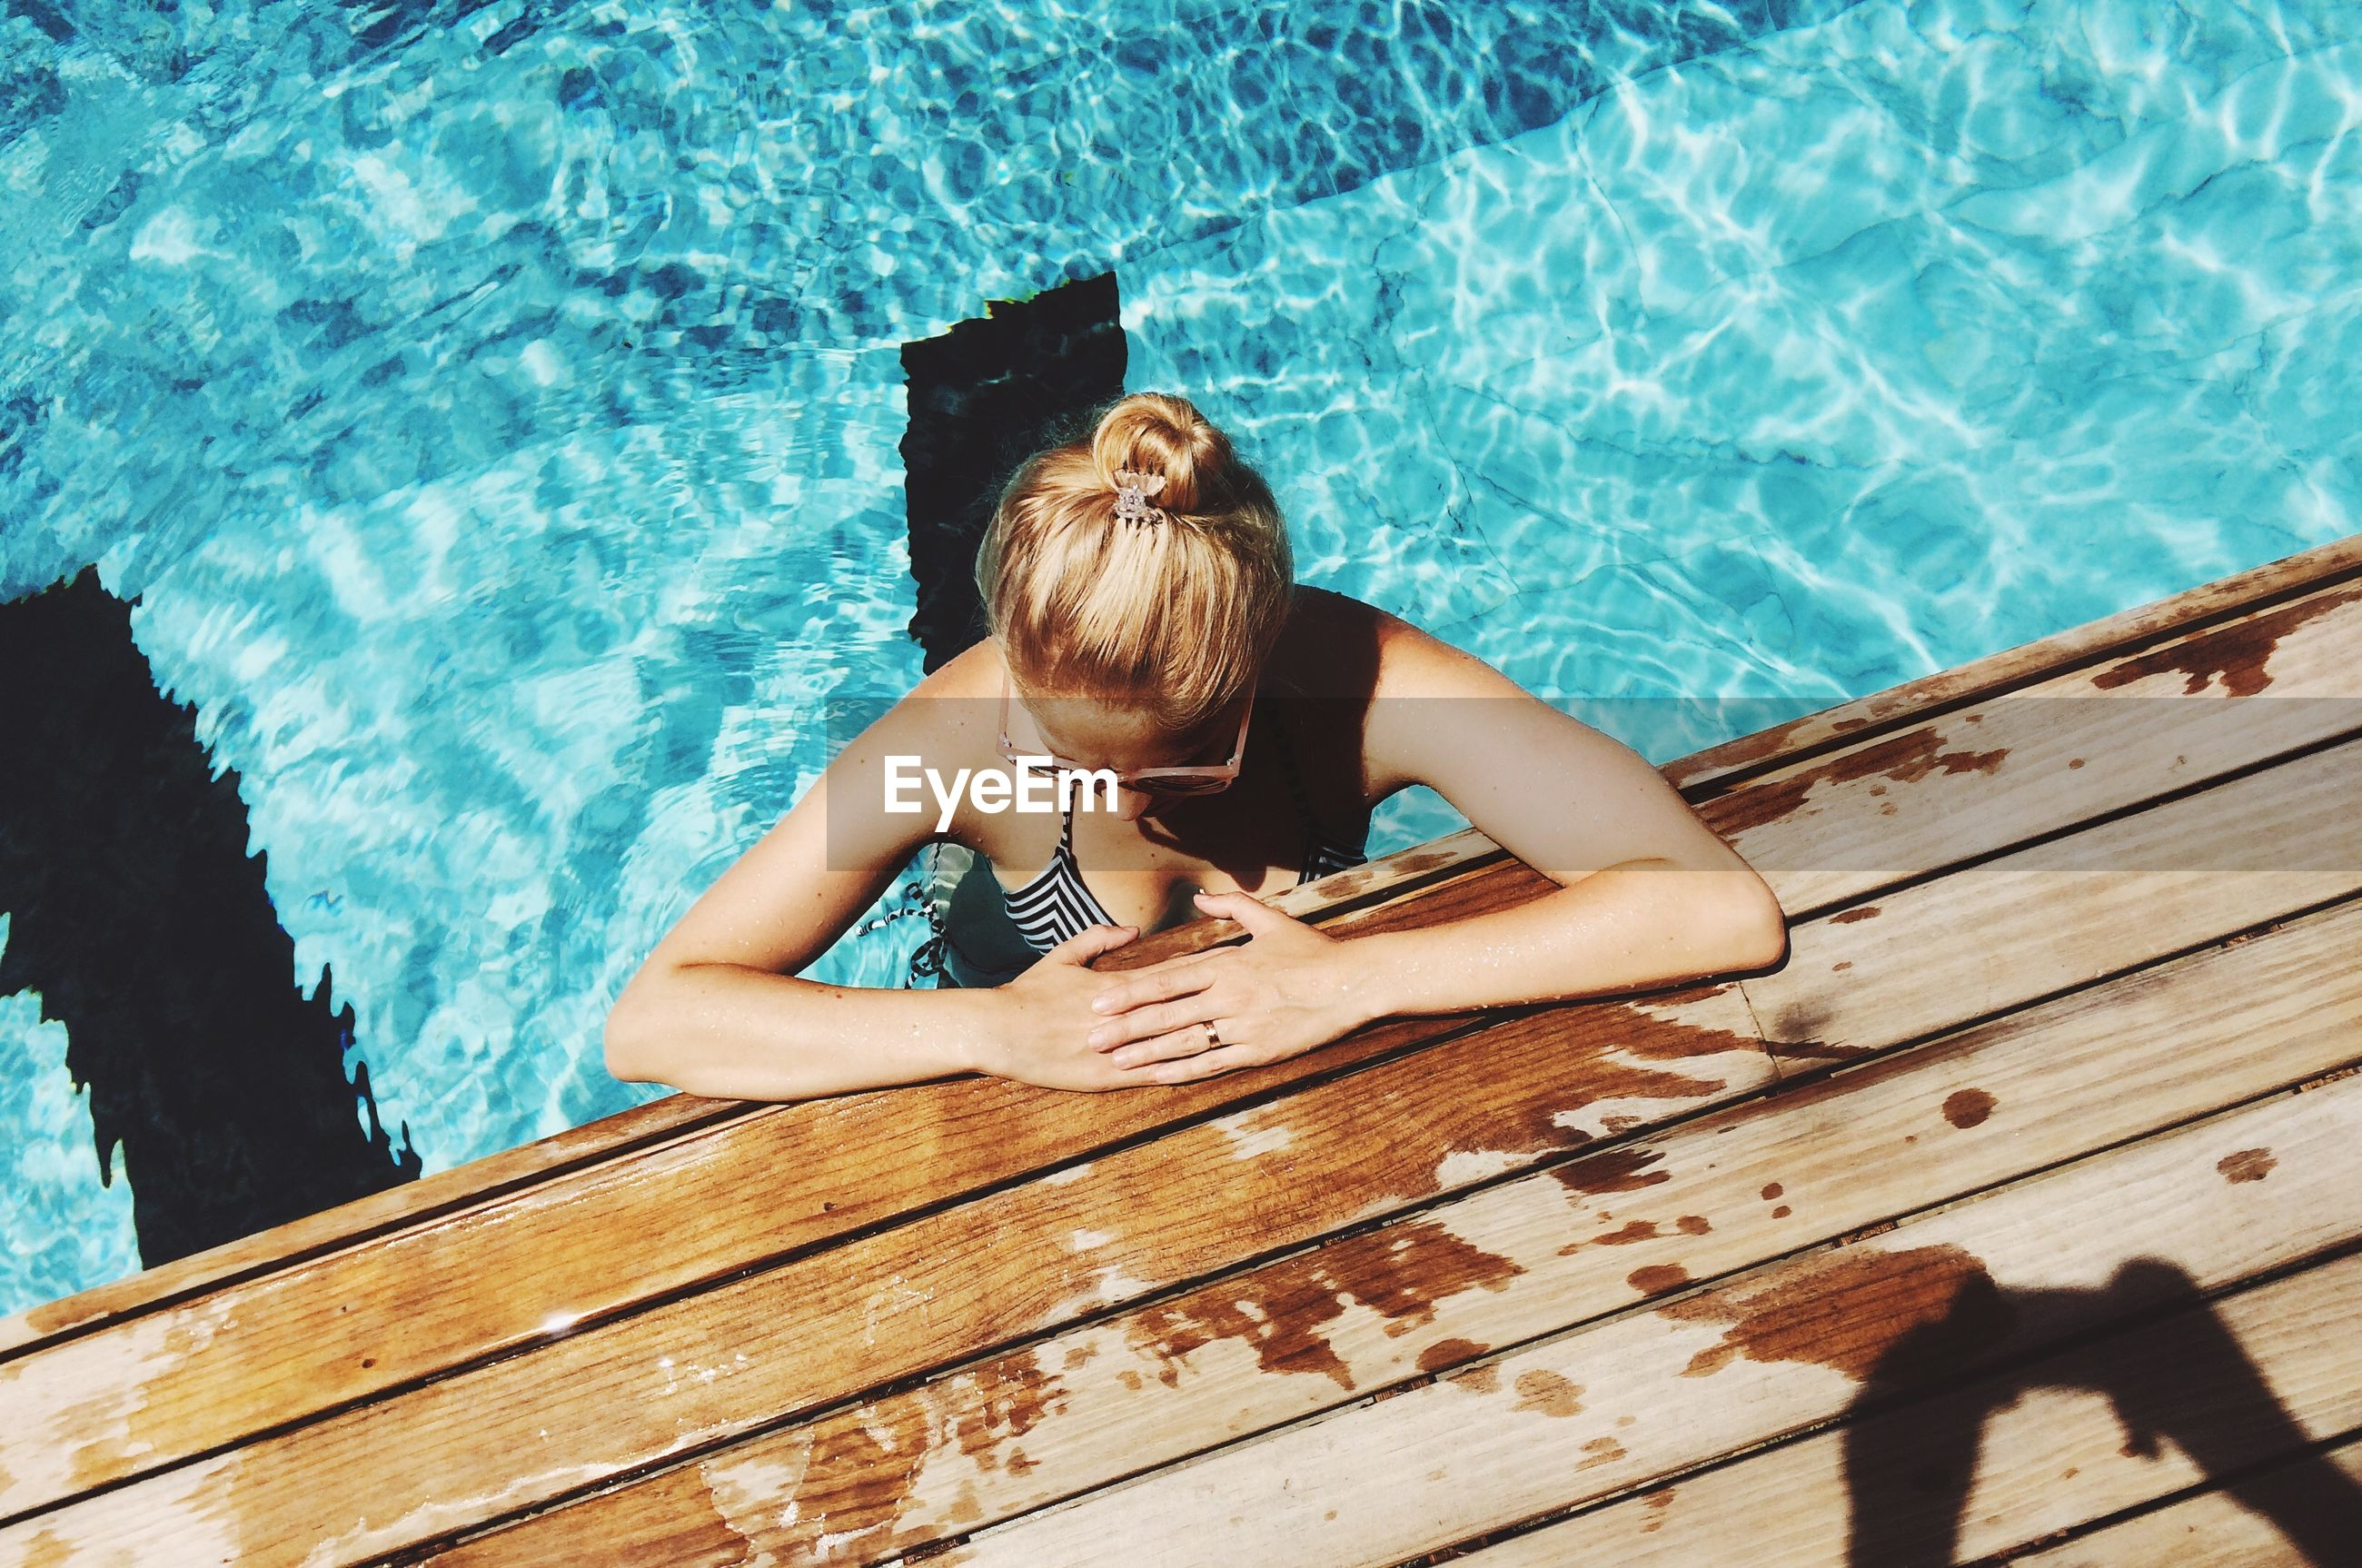 HIGH ANGLE VIEW OF YOUNG WOMAN RELAXING IN SWIMMING POOL